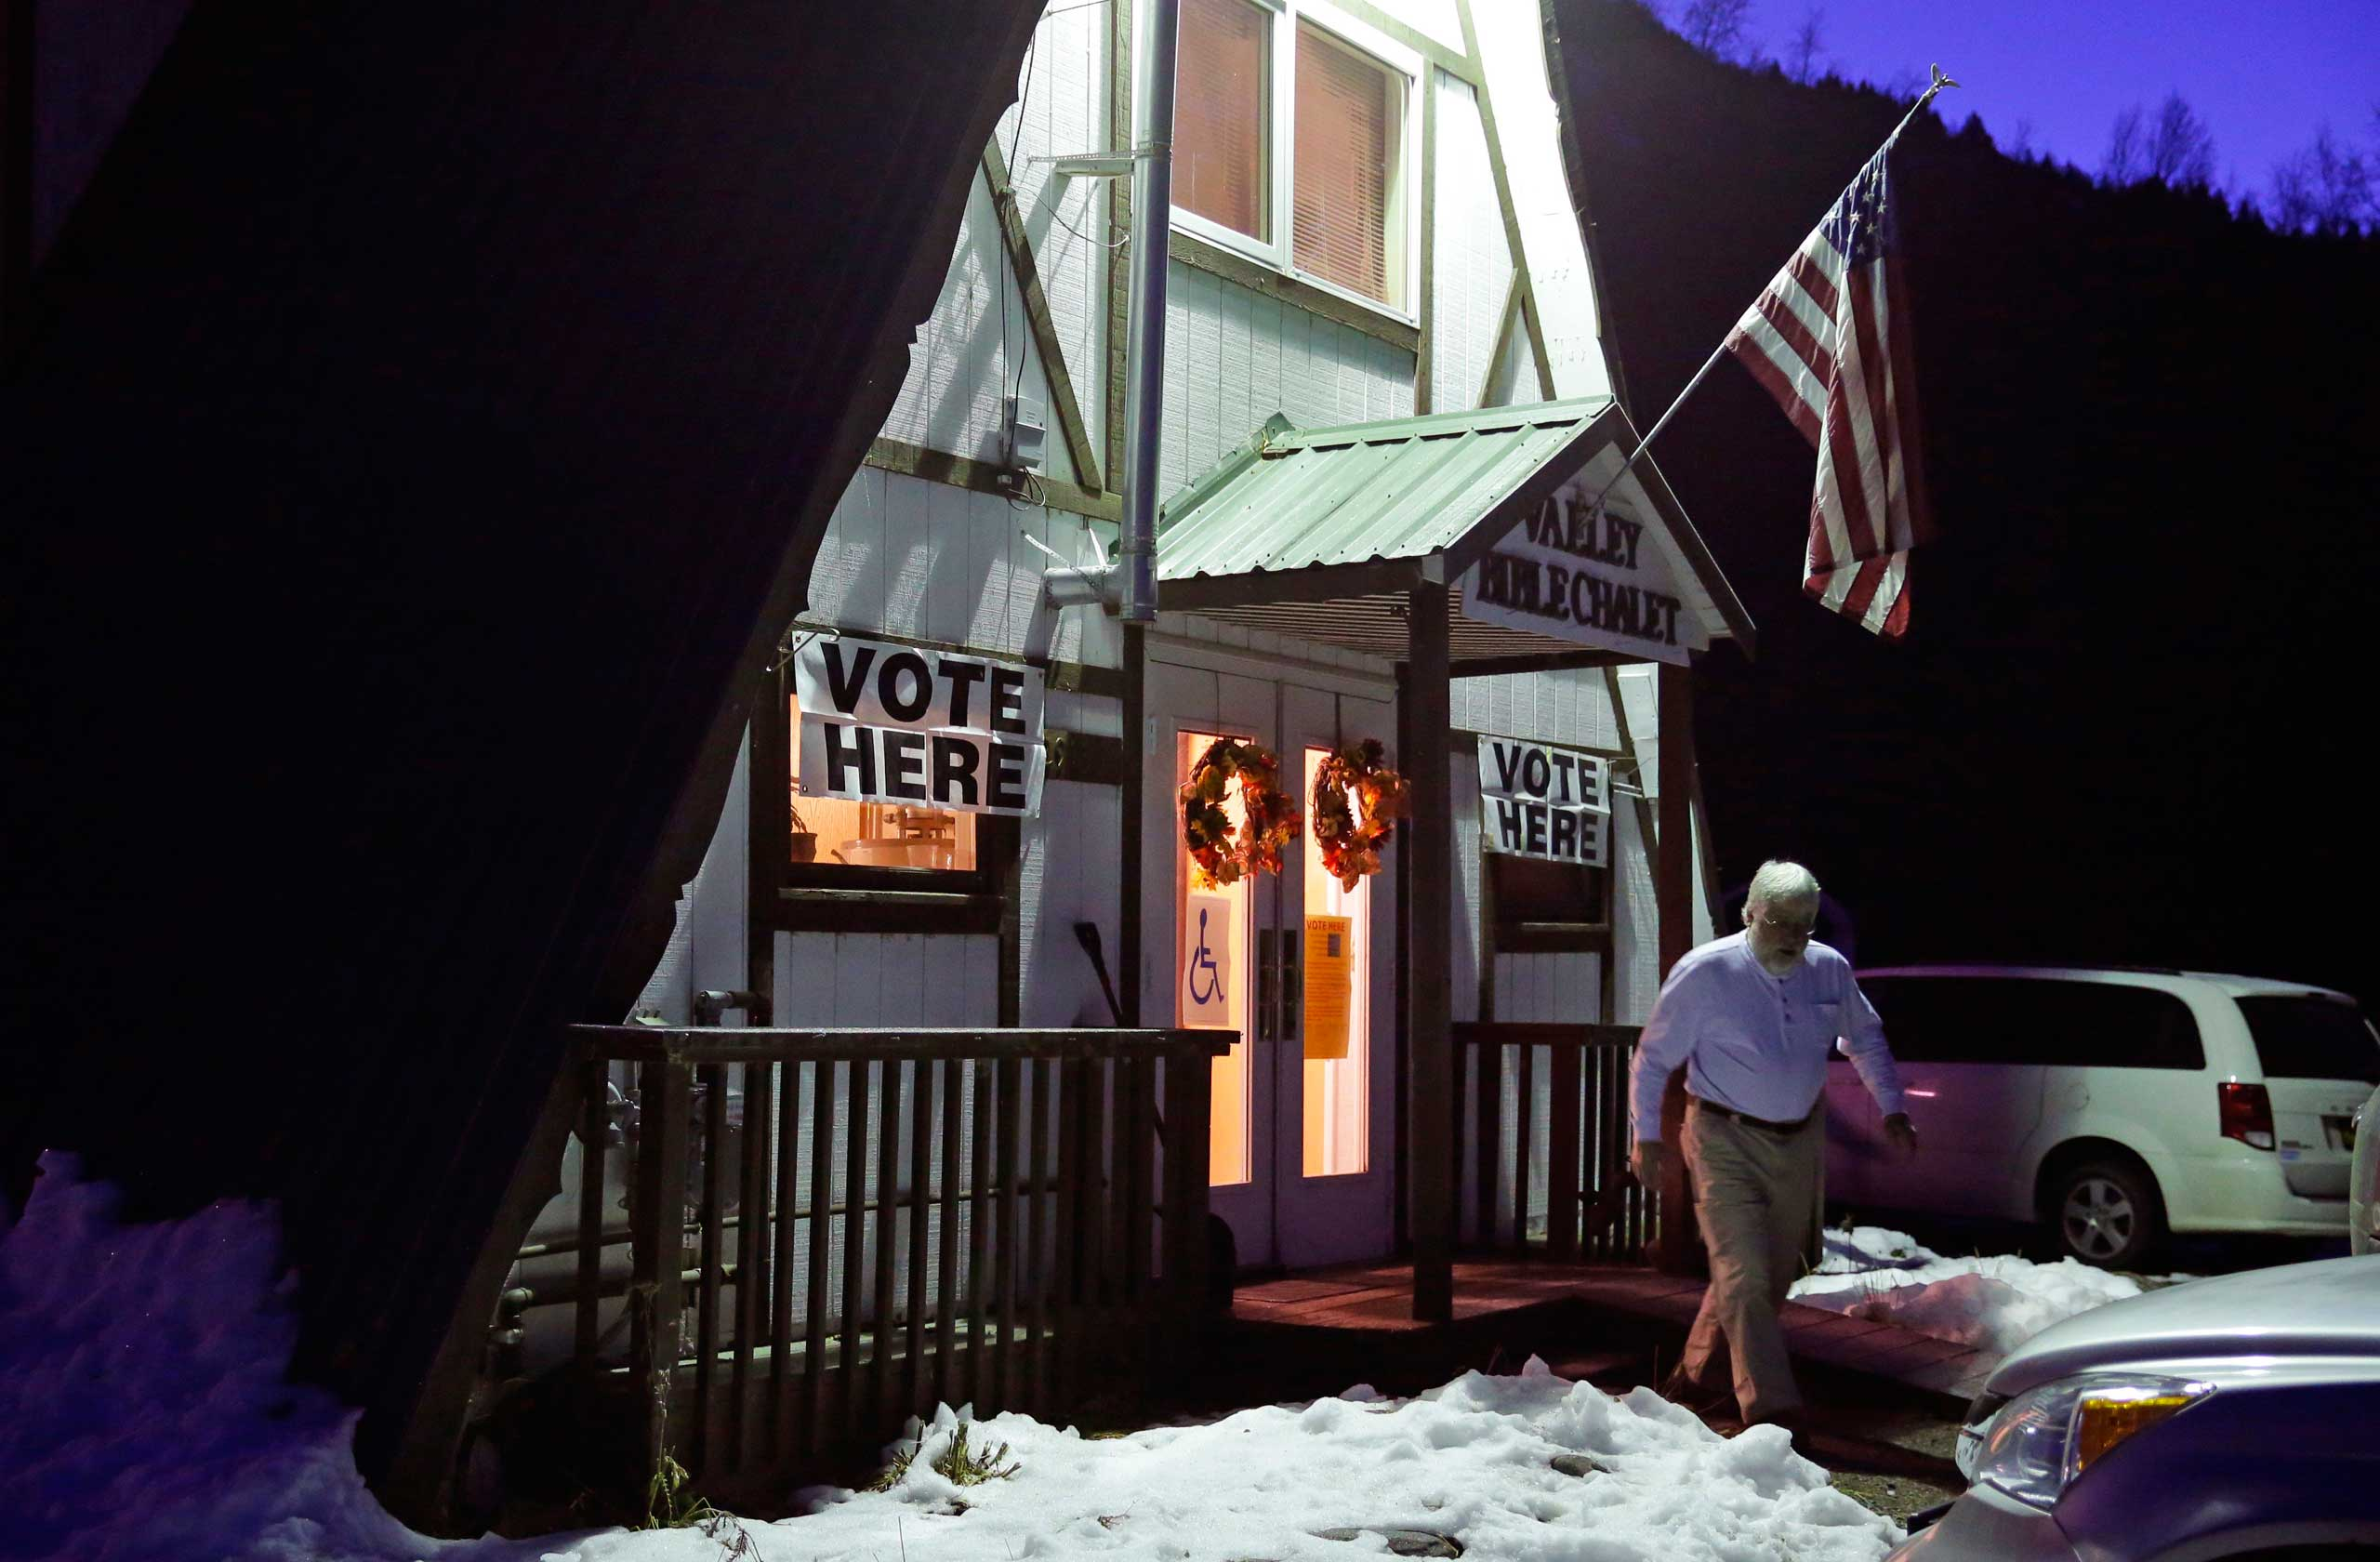 A voter leaves the Valley Bible Chalet polling location in Indian, Alaska on Nov. 4, 2014.